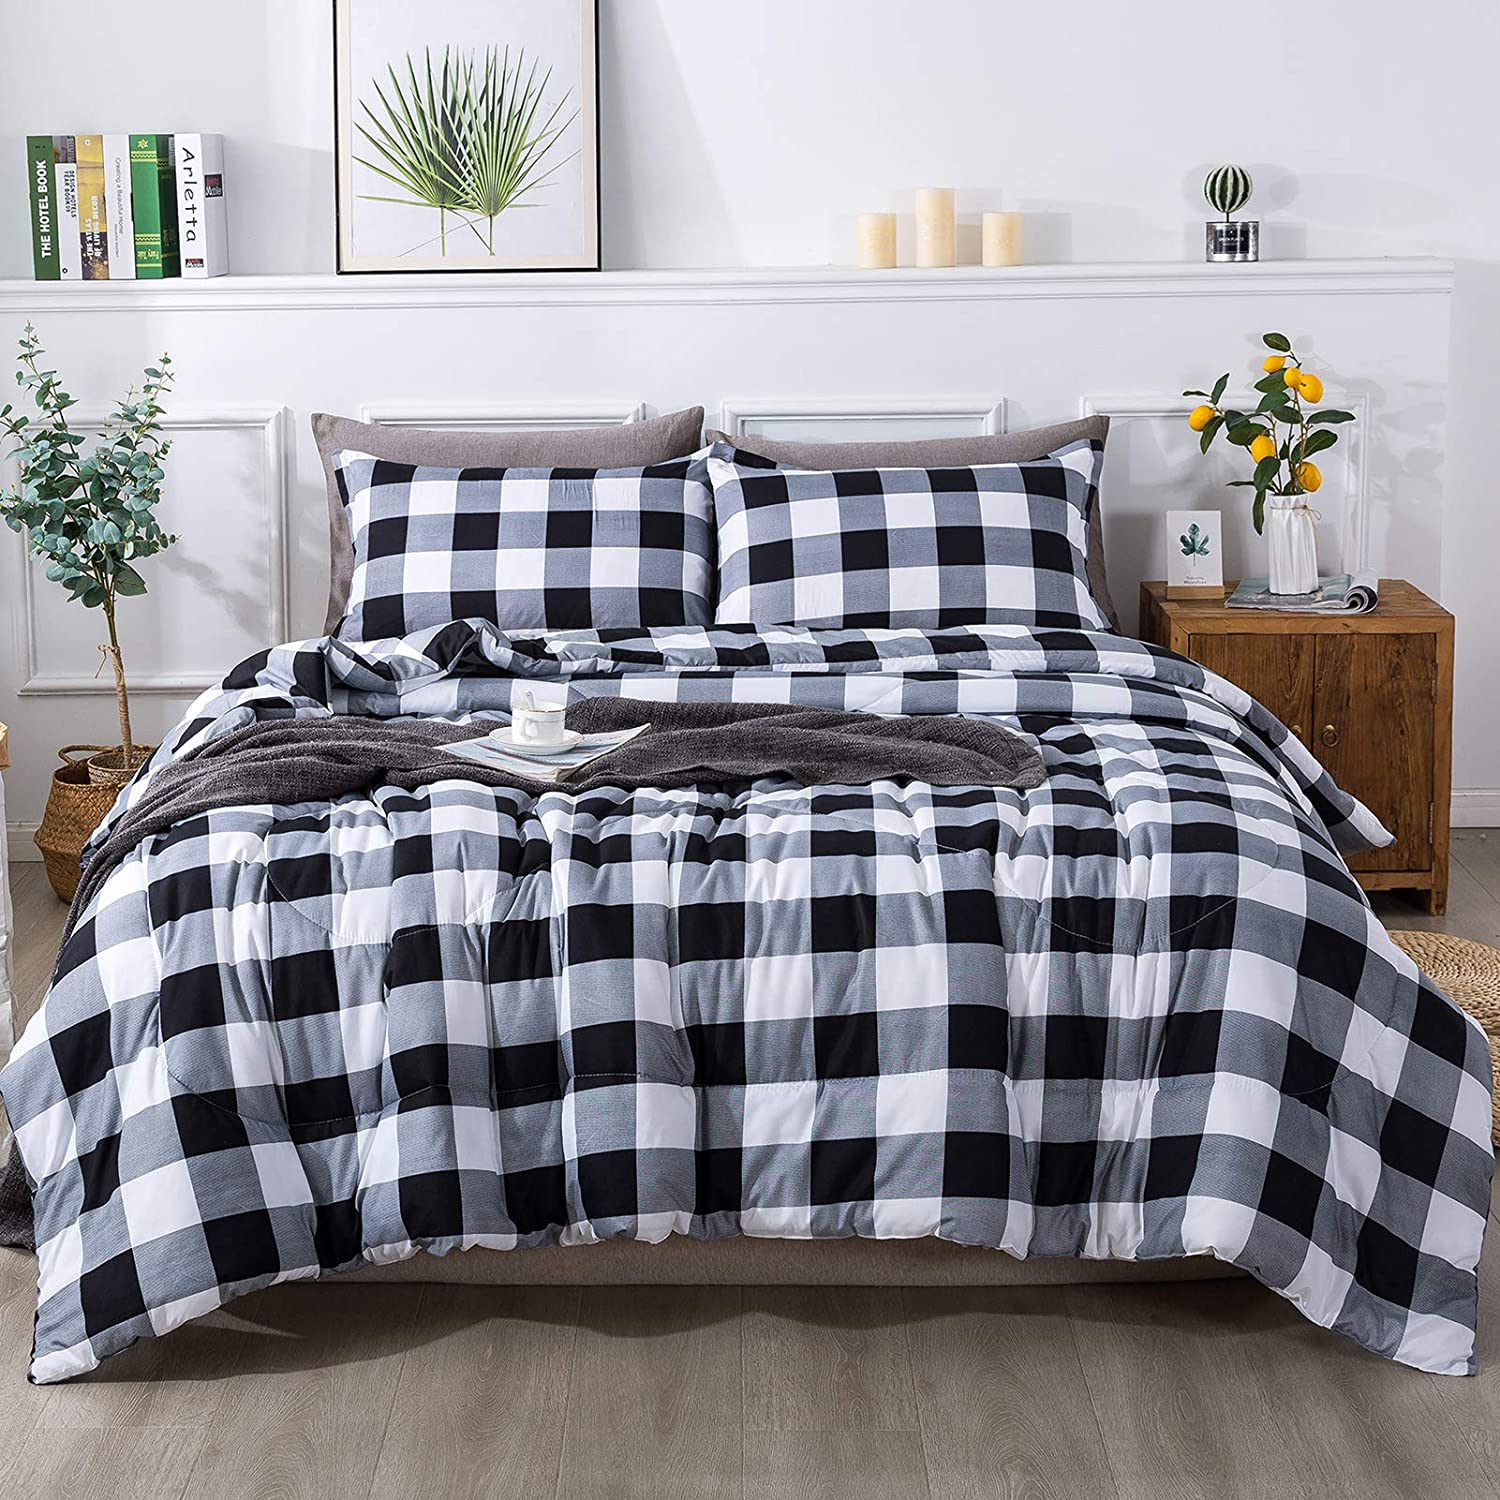 Andency Gray Plaid Comforter King(104x90 Inch), 3 Pieces(1 Plaid Comforter and 2 Pillowcases) Buffalo Checked Plaid Comforter Set, Geometric Checkered Comforter Bedding Set